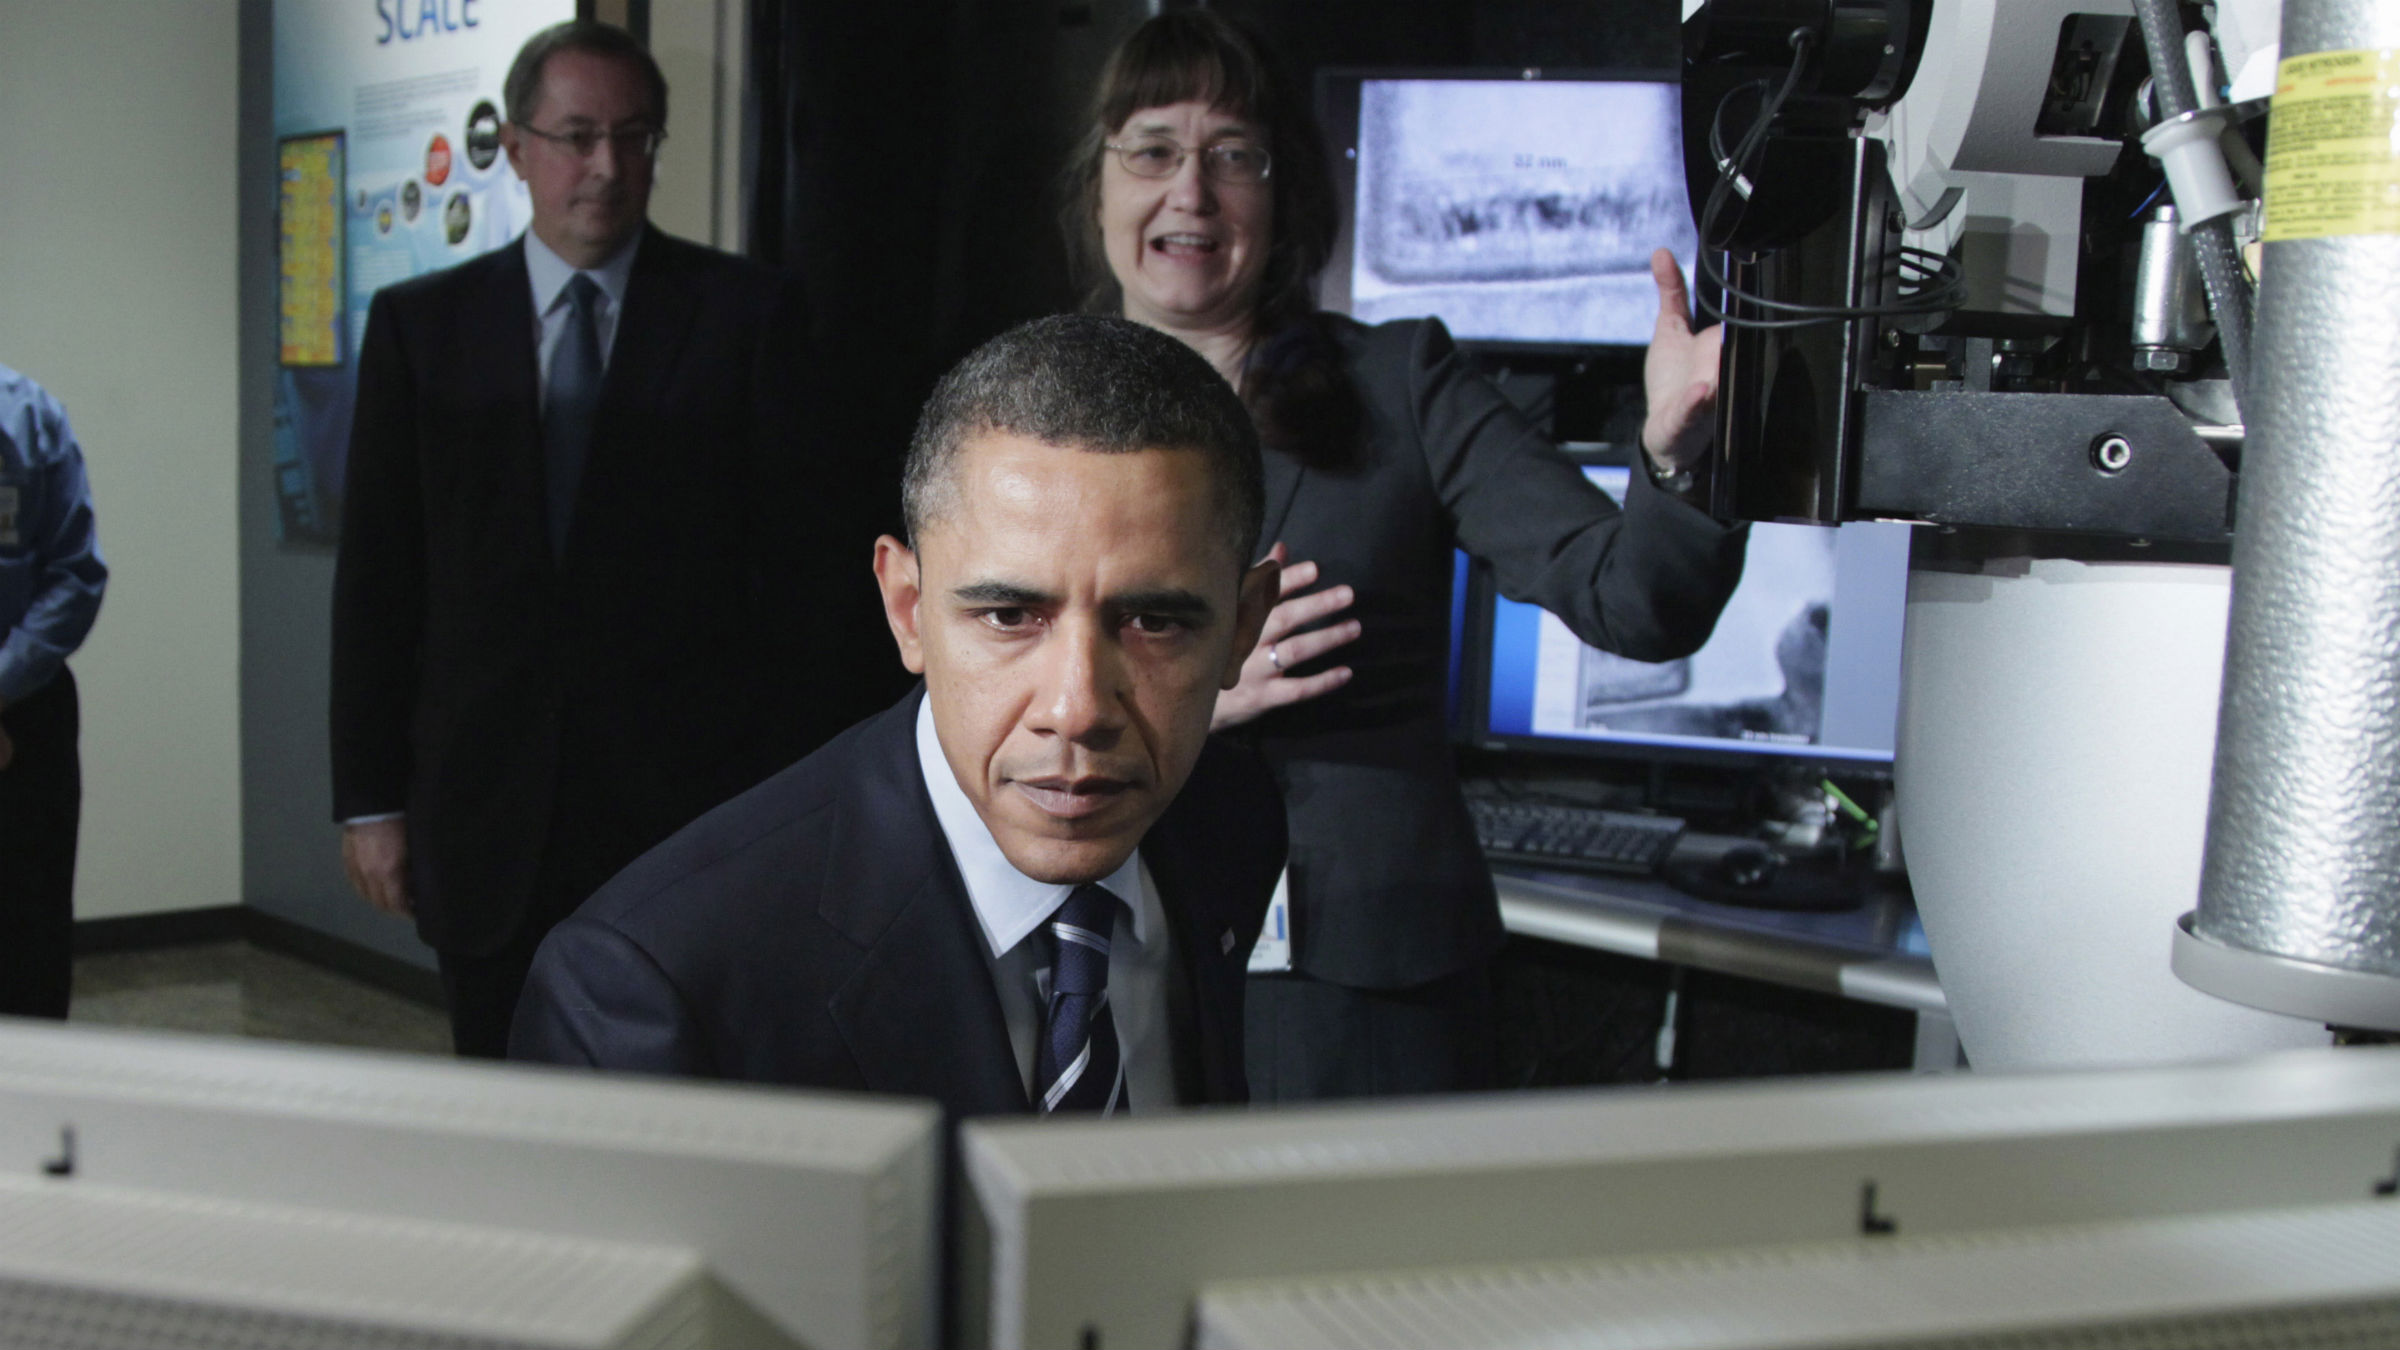 President Barack Obama, accompanied by Barbara Miner, PhD, Manager, Intel Transmission Electronic Microscope Lab, right, and Intel CEO Paul Otellini, second from left, looks at a computer screen at the Intel Corporation with in Hillsboro, Ore., Friday, Feb. 18, 2011